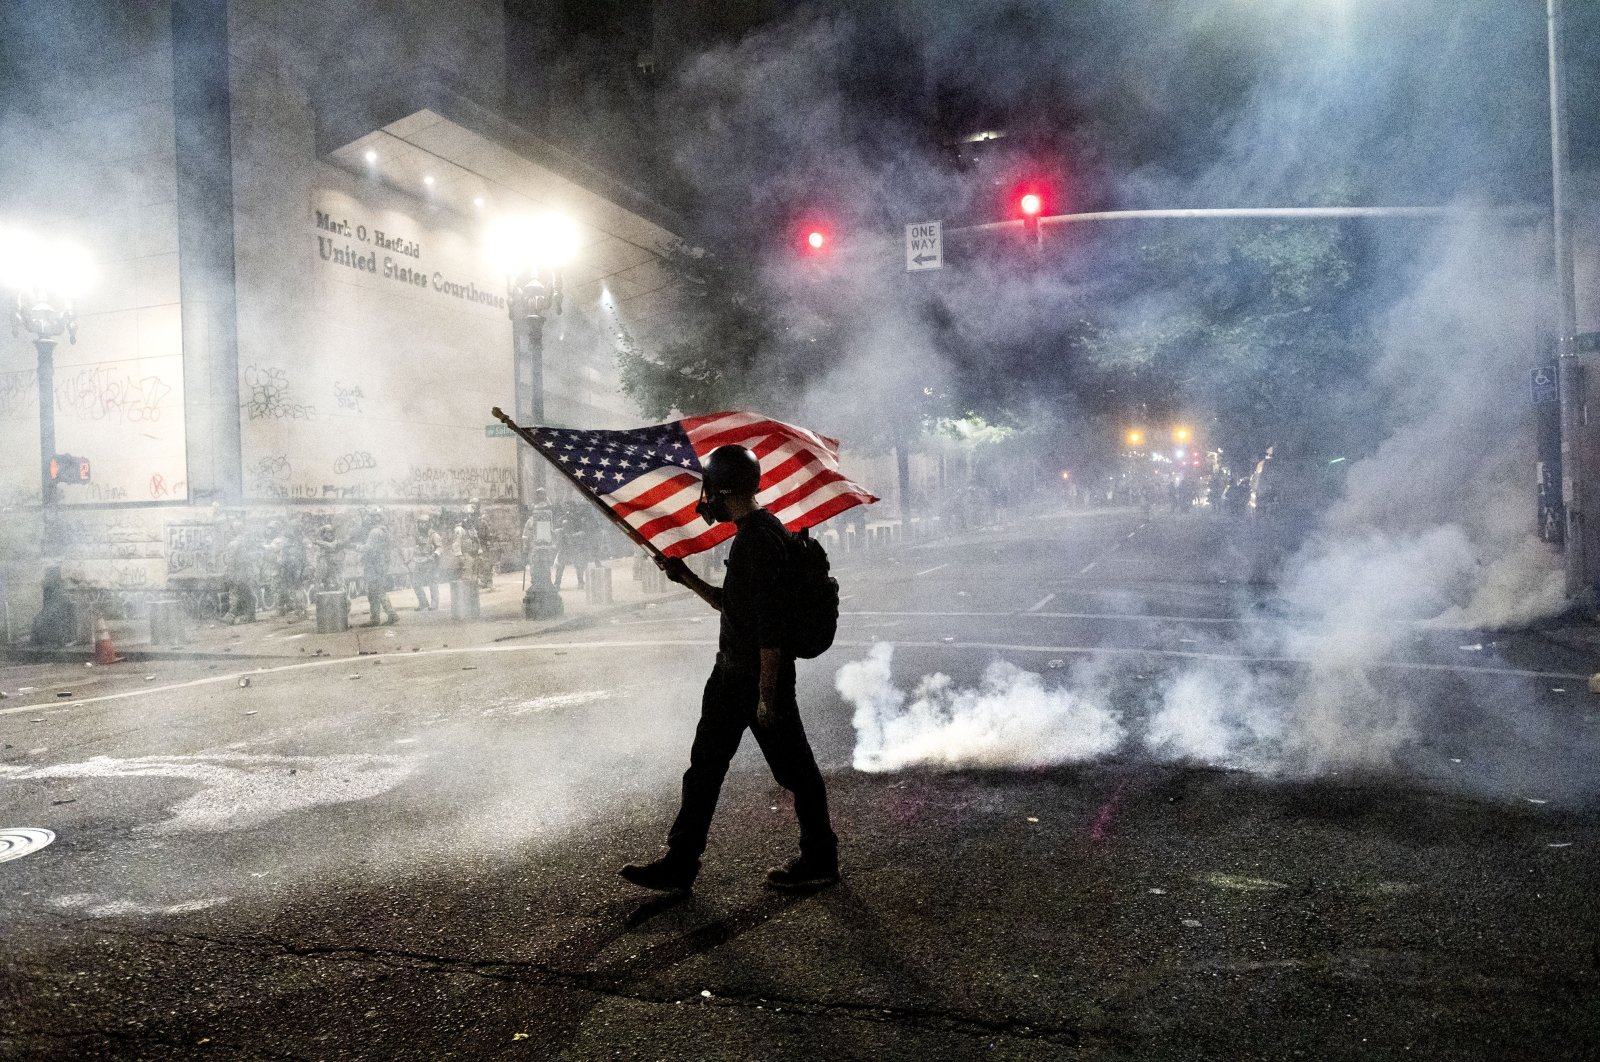 A Black Lives Matter protester carries an American flag as teargas fills the air outside the Mark O. Hatfield United States Courthouse, Portland, Oregon, July 21, 2020. (AP Photo)